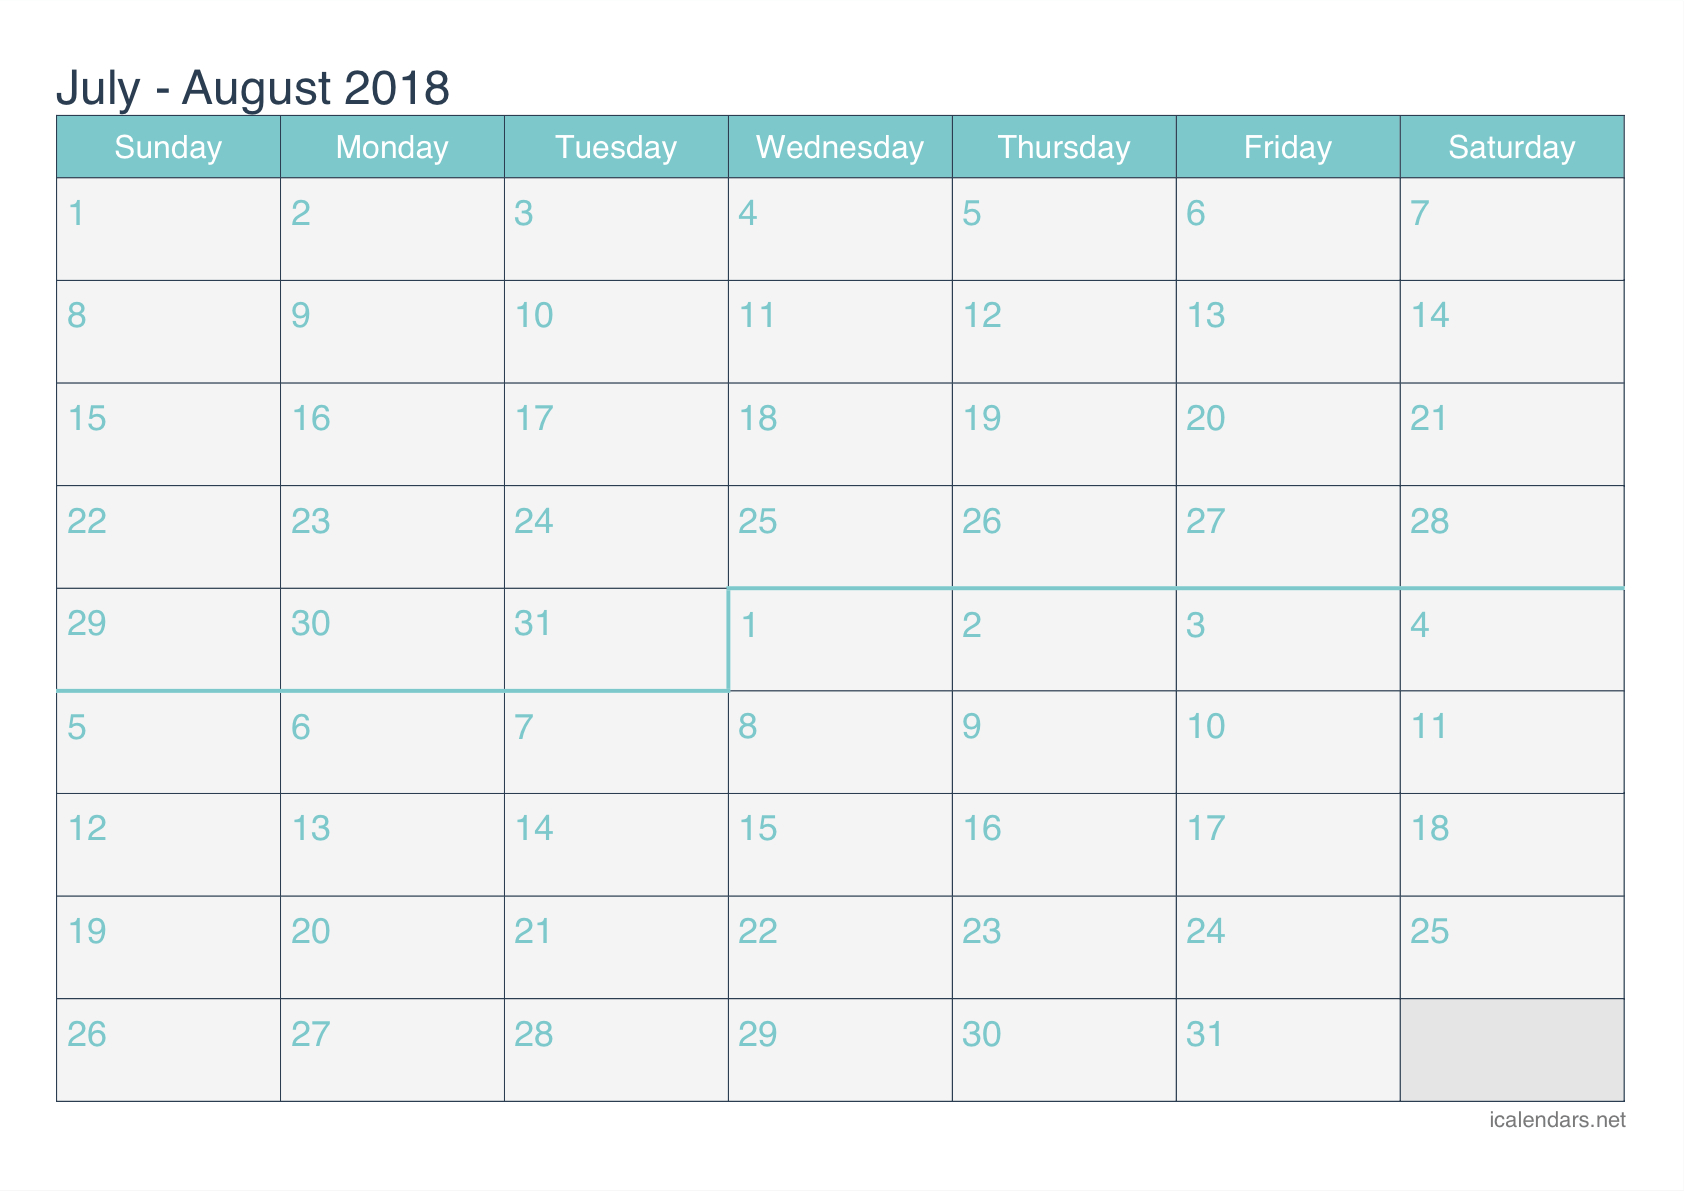 July And August 2018 Printable Calendar - Icalendars